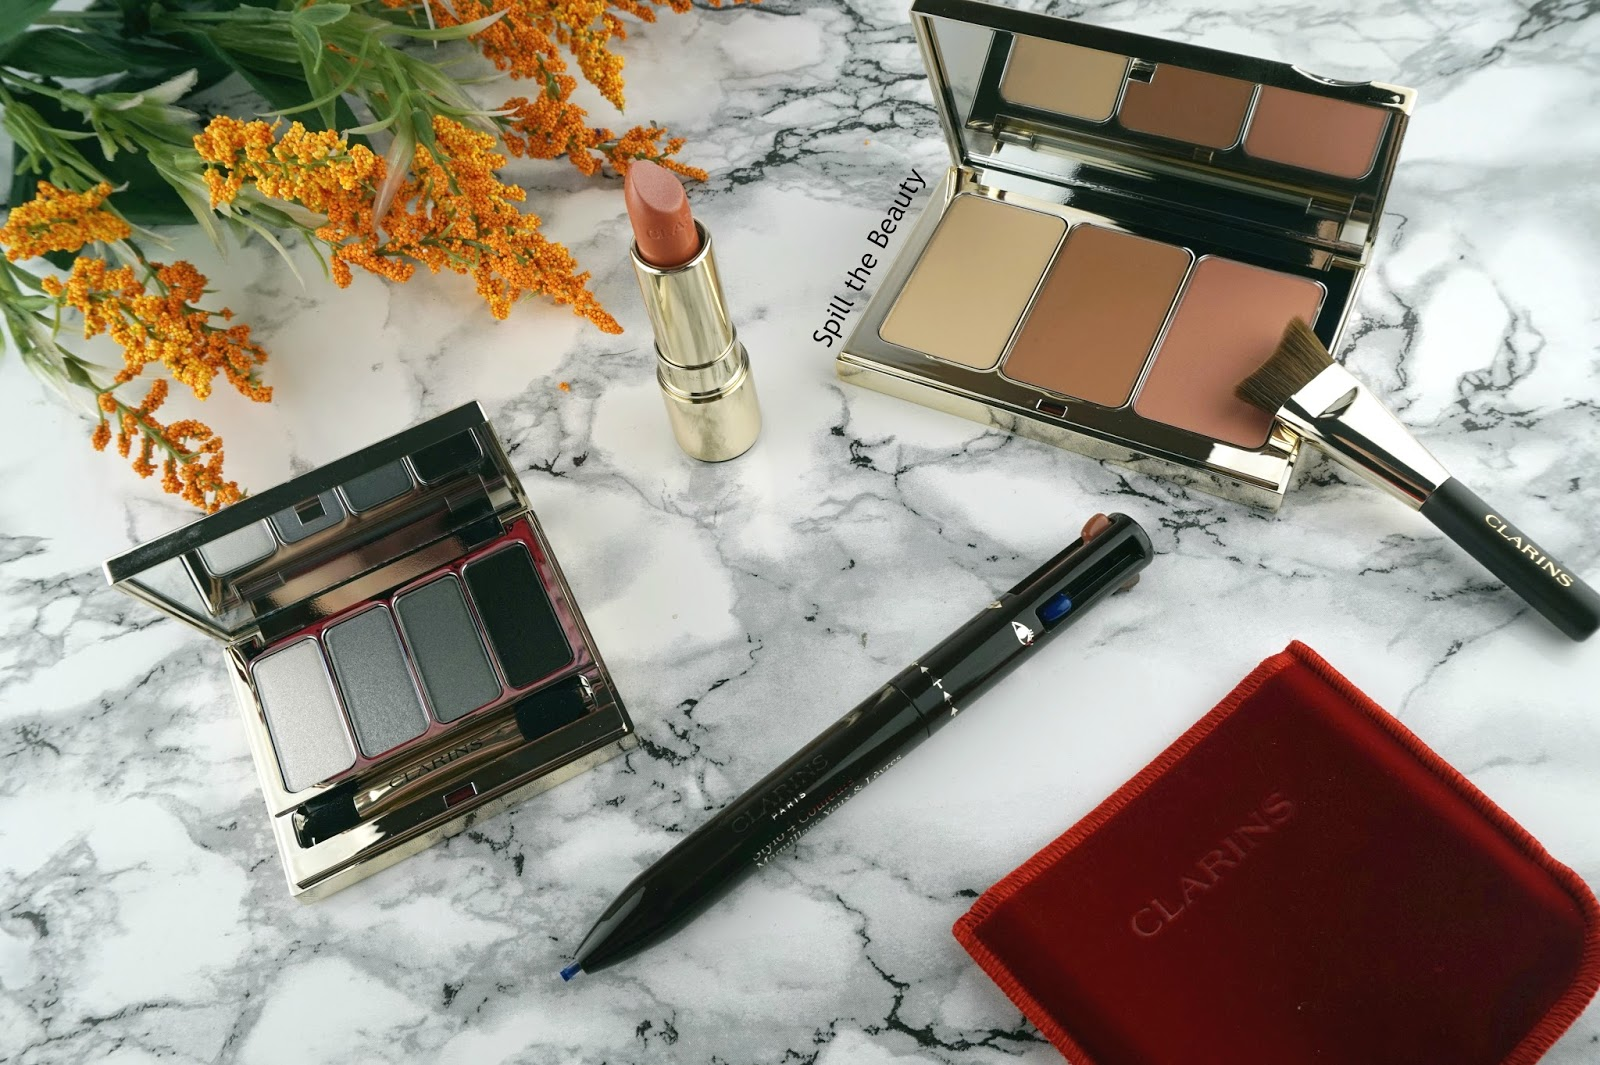 Clarins Spring 2017 Collection – Review, Swatches, and Look